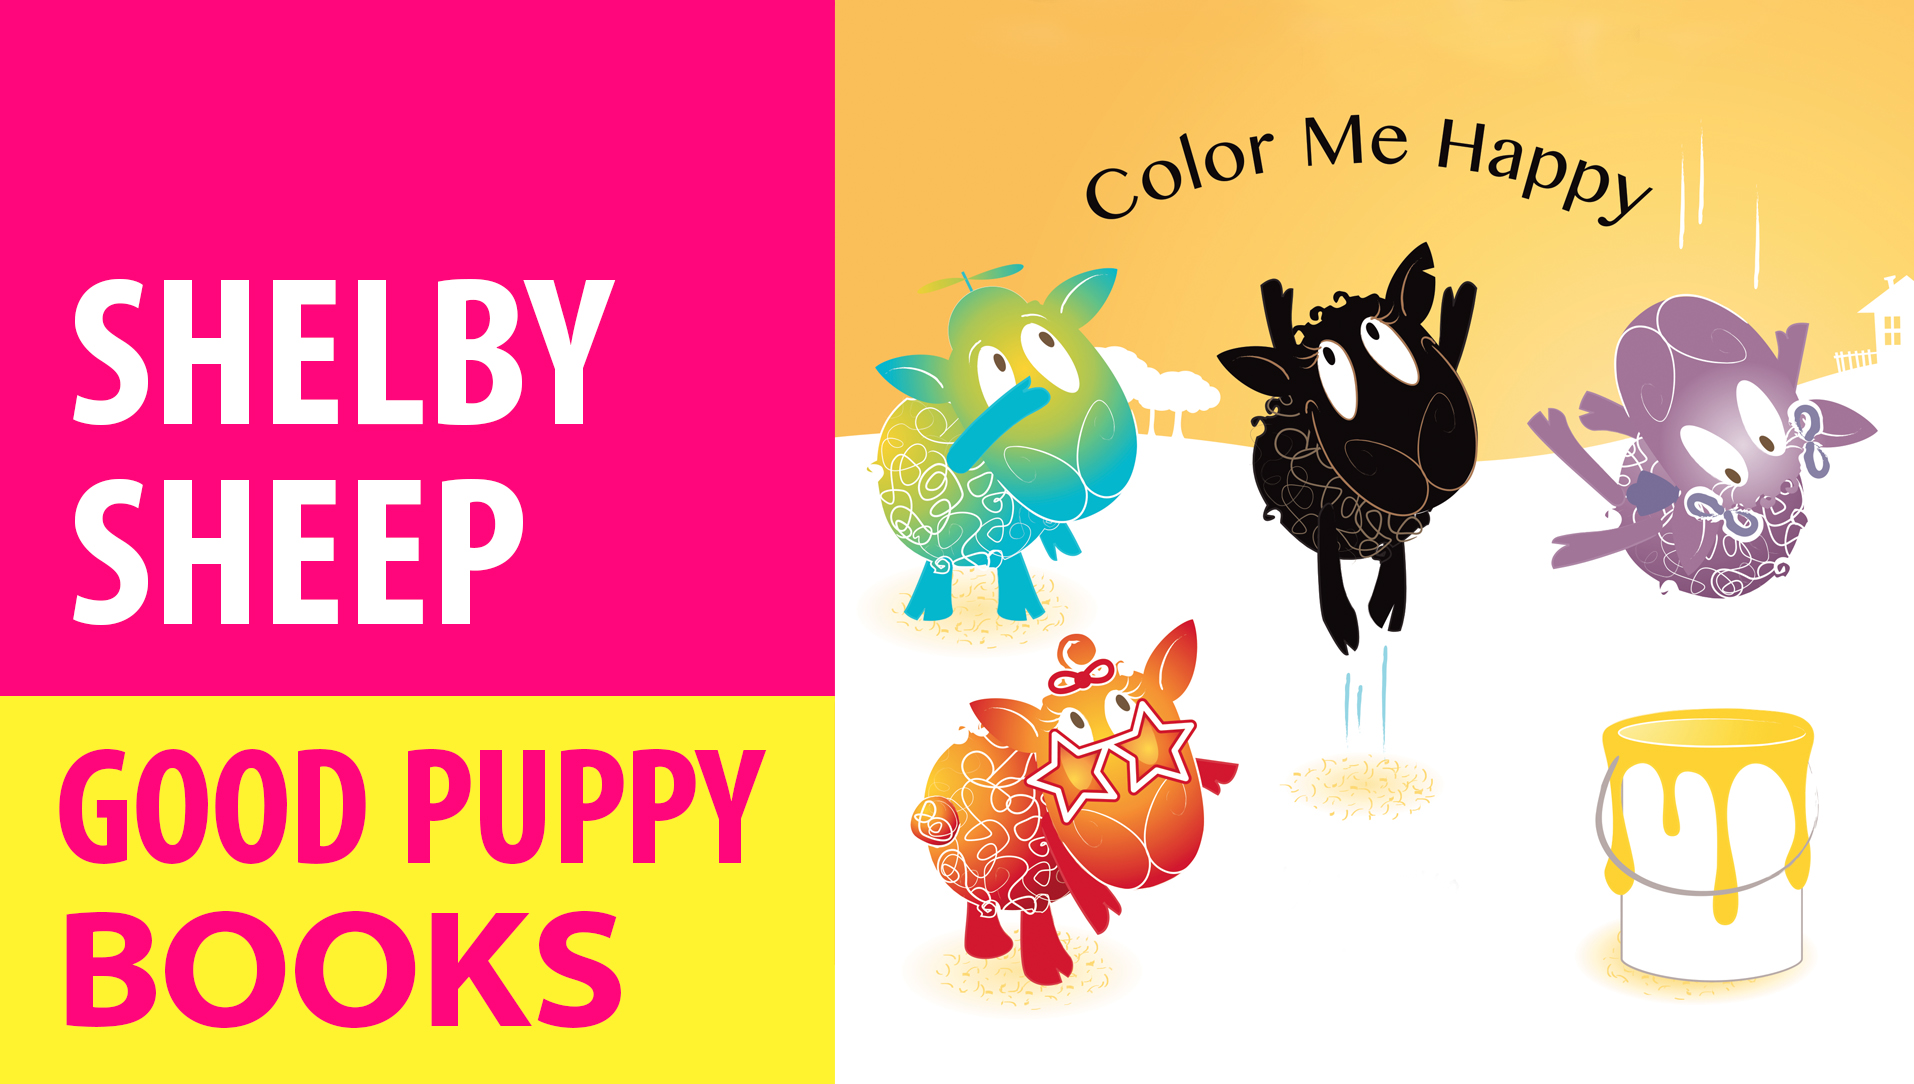 CHILDREN'S PICTURE BOOKS : Shelby Sheep In Color Me Happy